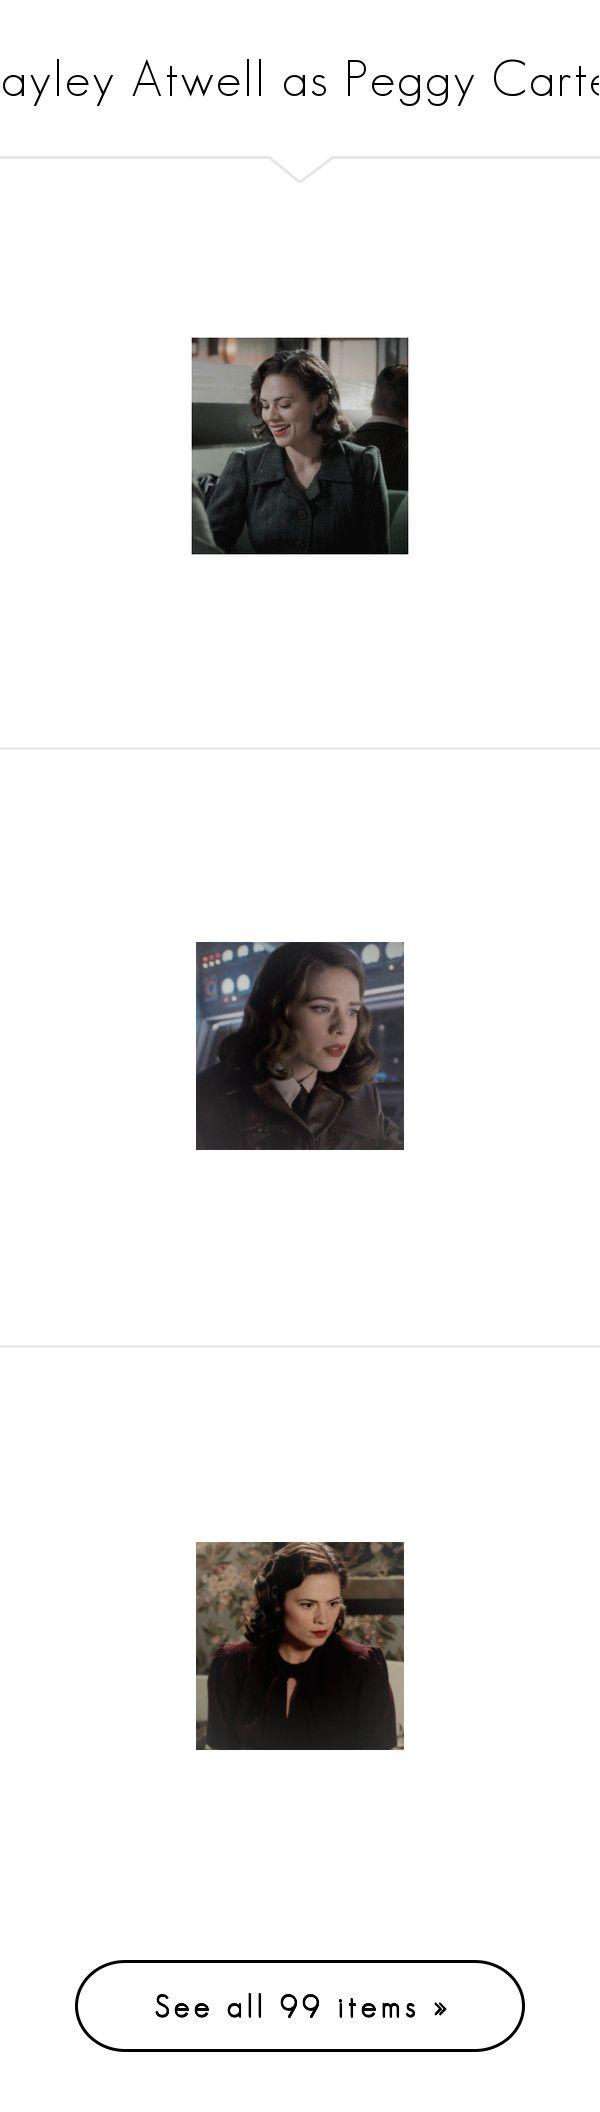 """""""Hayley Atwell as Peggy Carter"""" by imawkwardhey ❤ liked on Polyvore featuring peggy carter, marvel, hayley atwell, avengers/agent carter icons, icon, comic, avengers, costumes, avengers costumes and captain america avengers costume"""